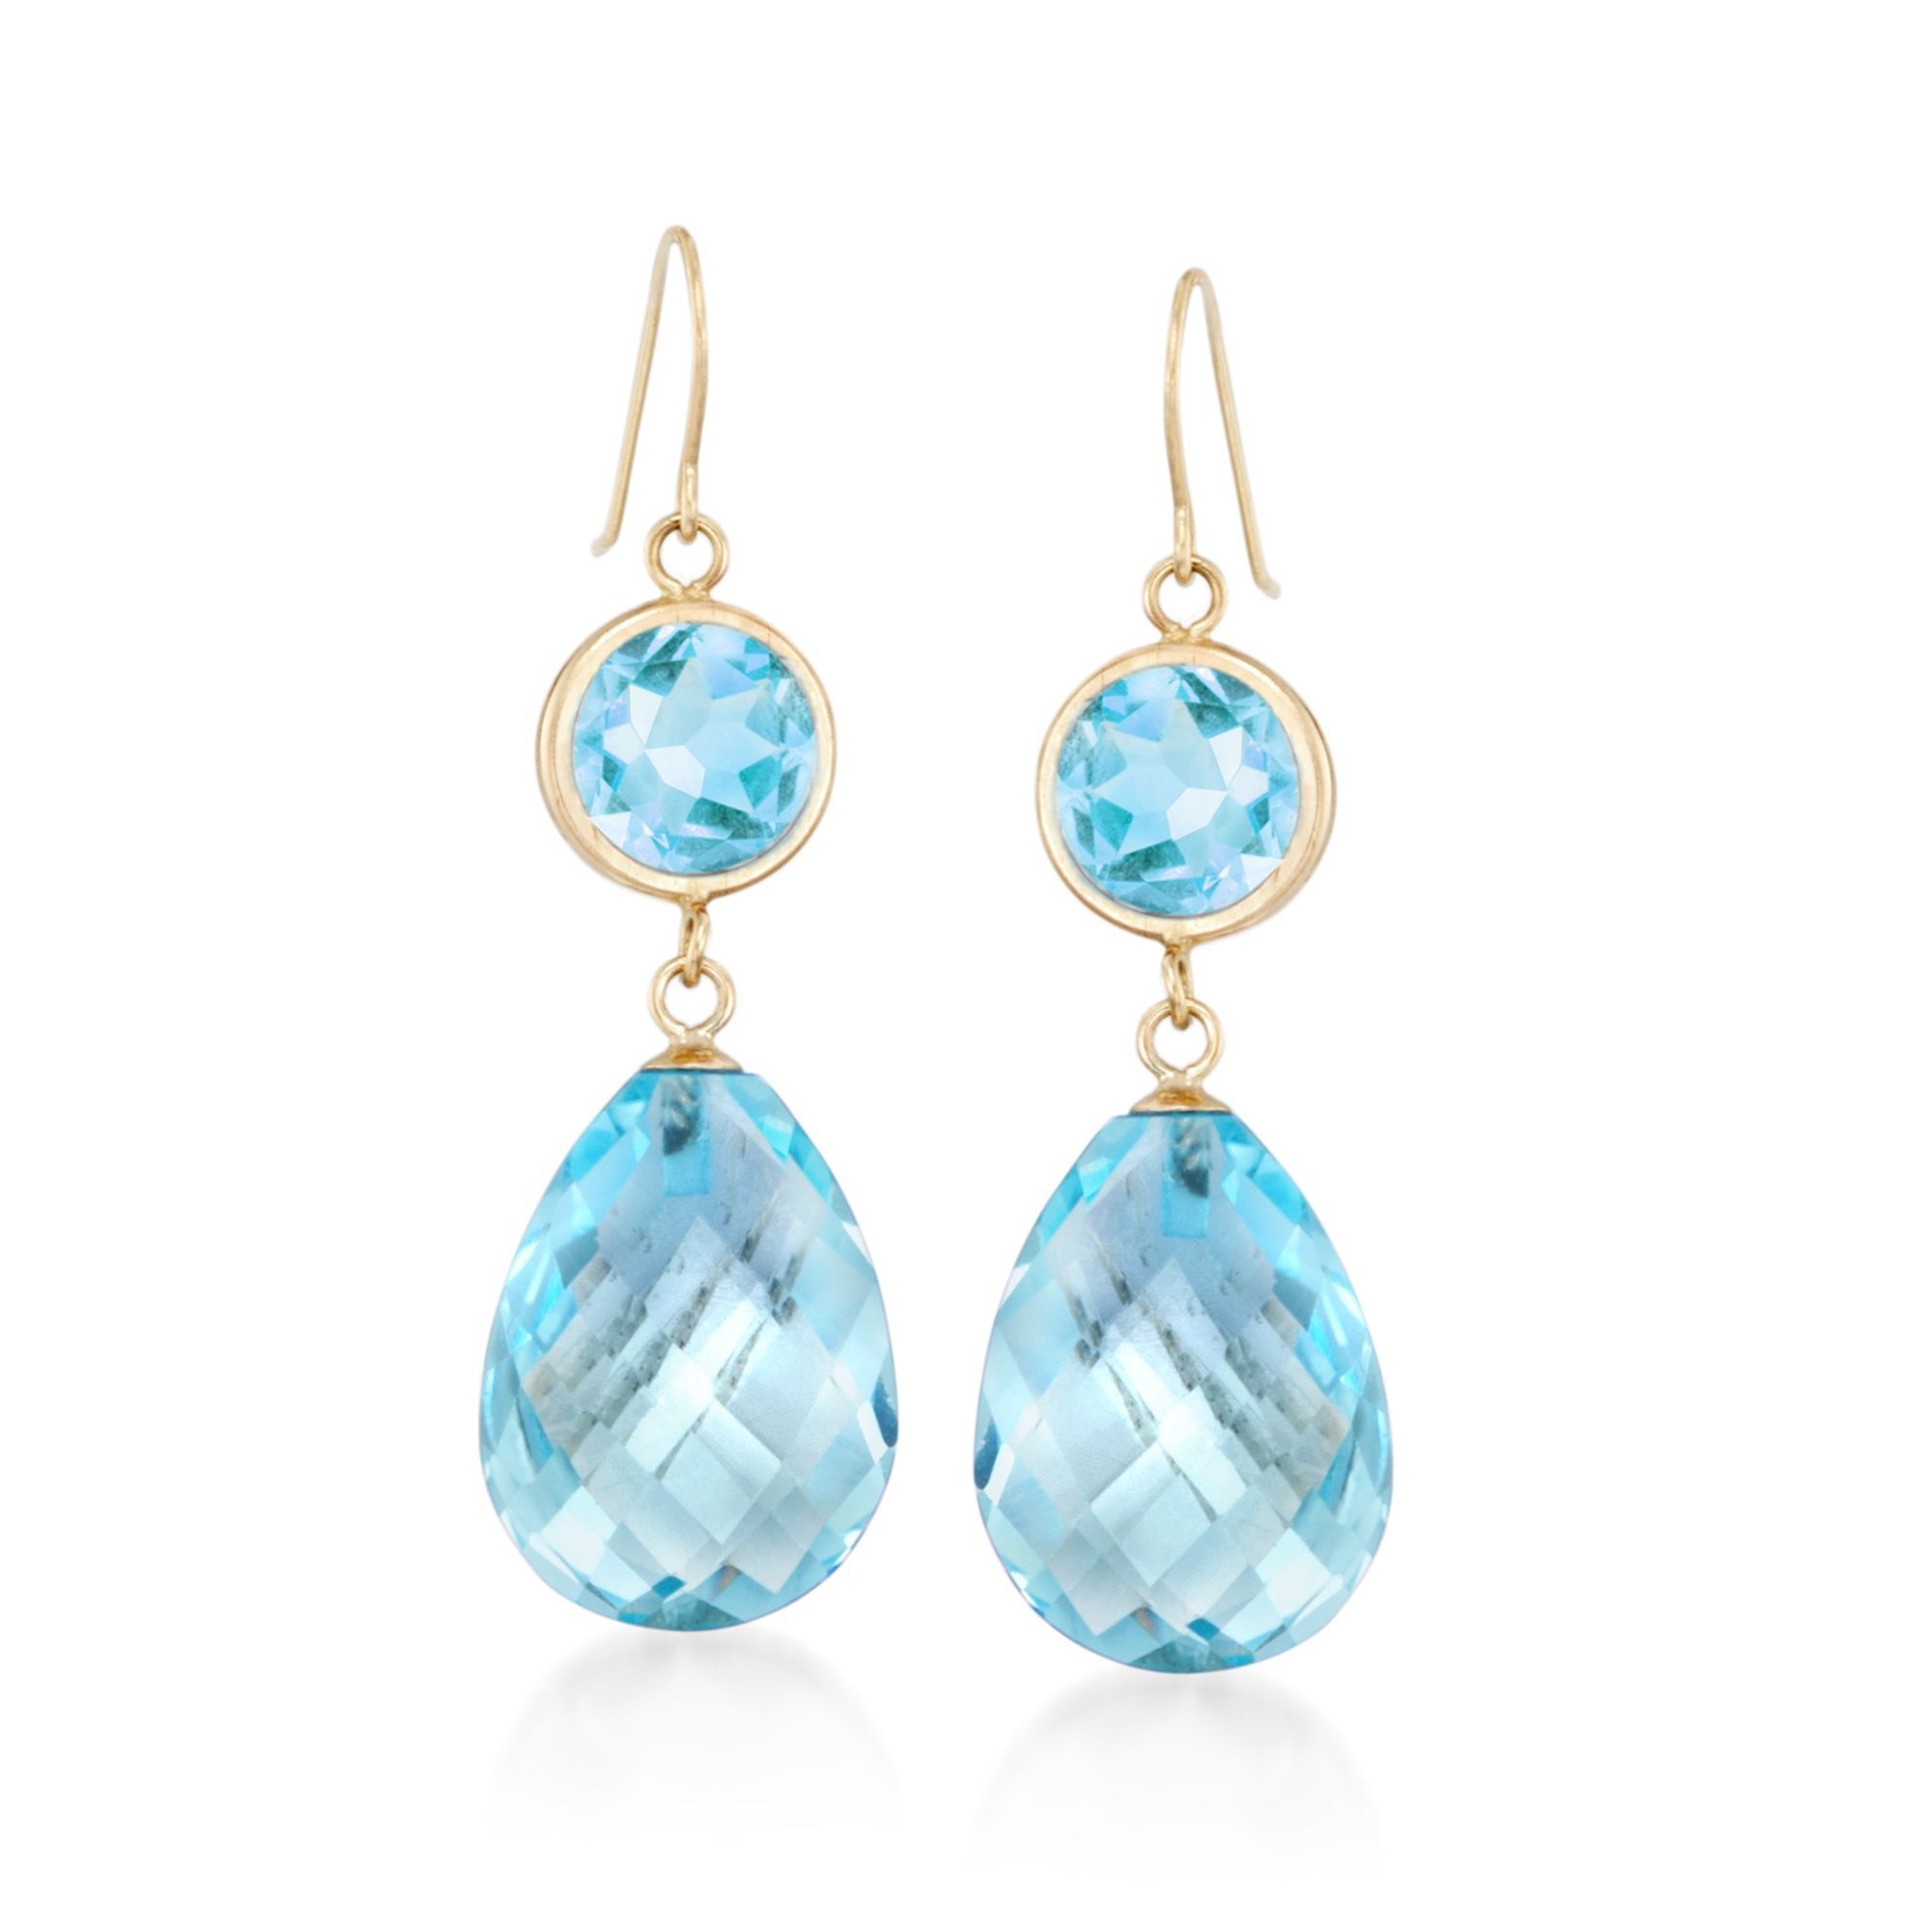 22 00 ct t w Blue Topaz Drop Earrings in 14kt Yellow Gold